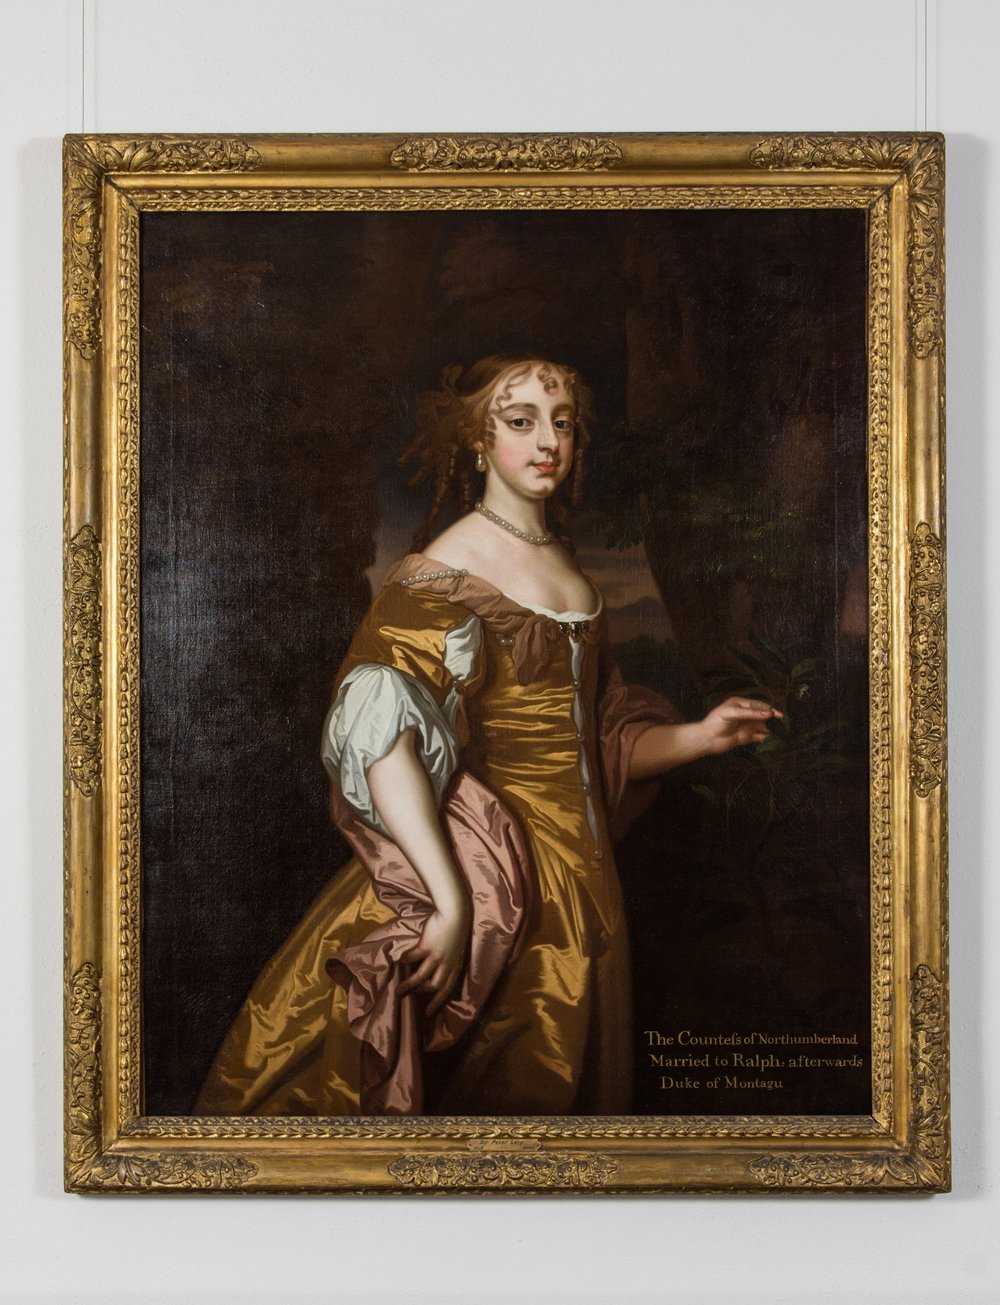 Portrait of Elizabeth Wriothesley, Countess of Northumberland